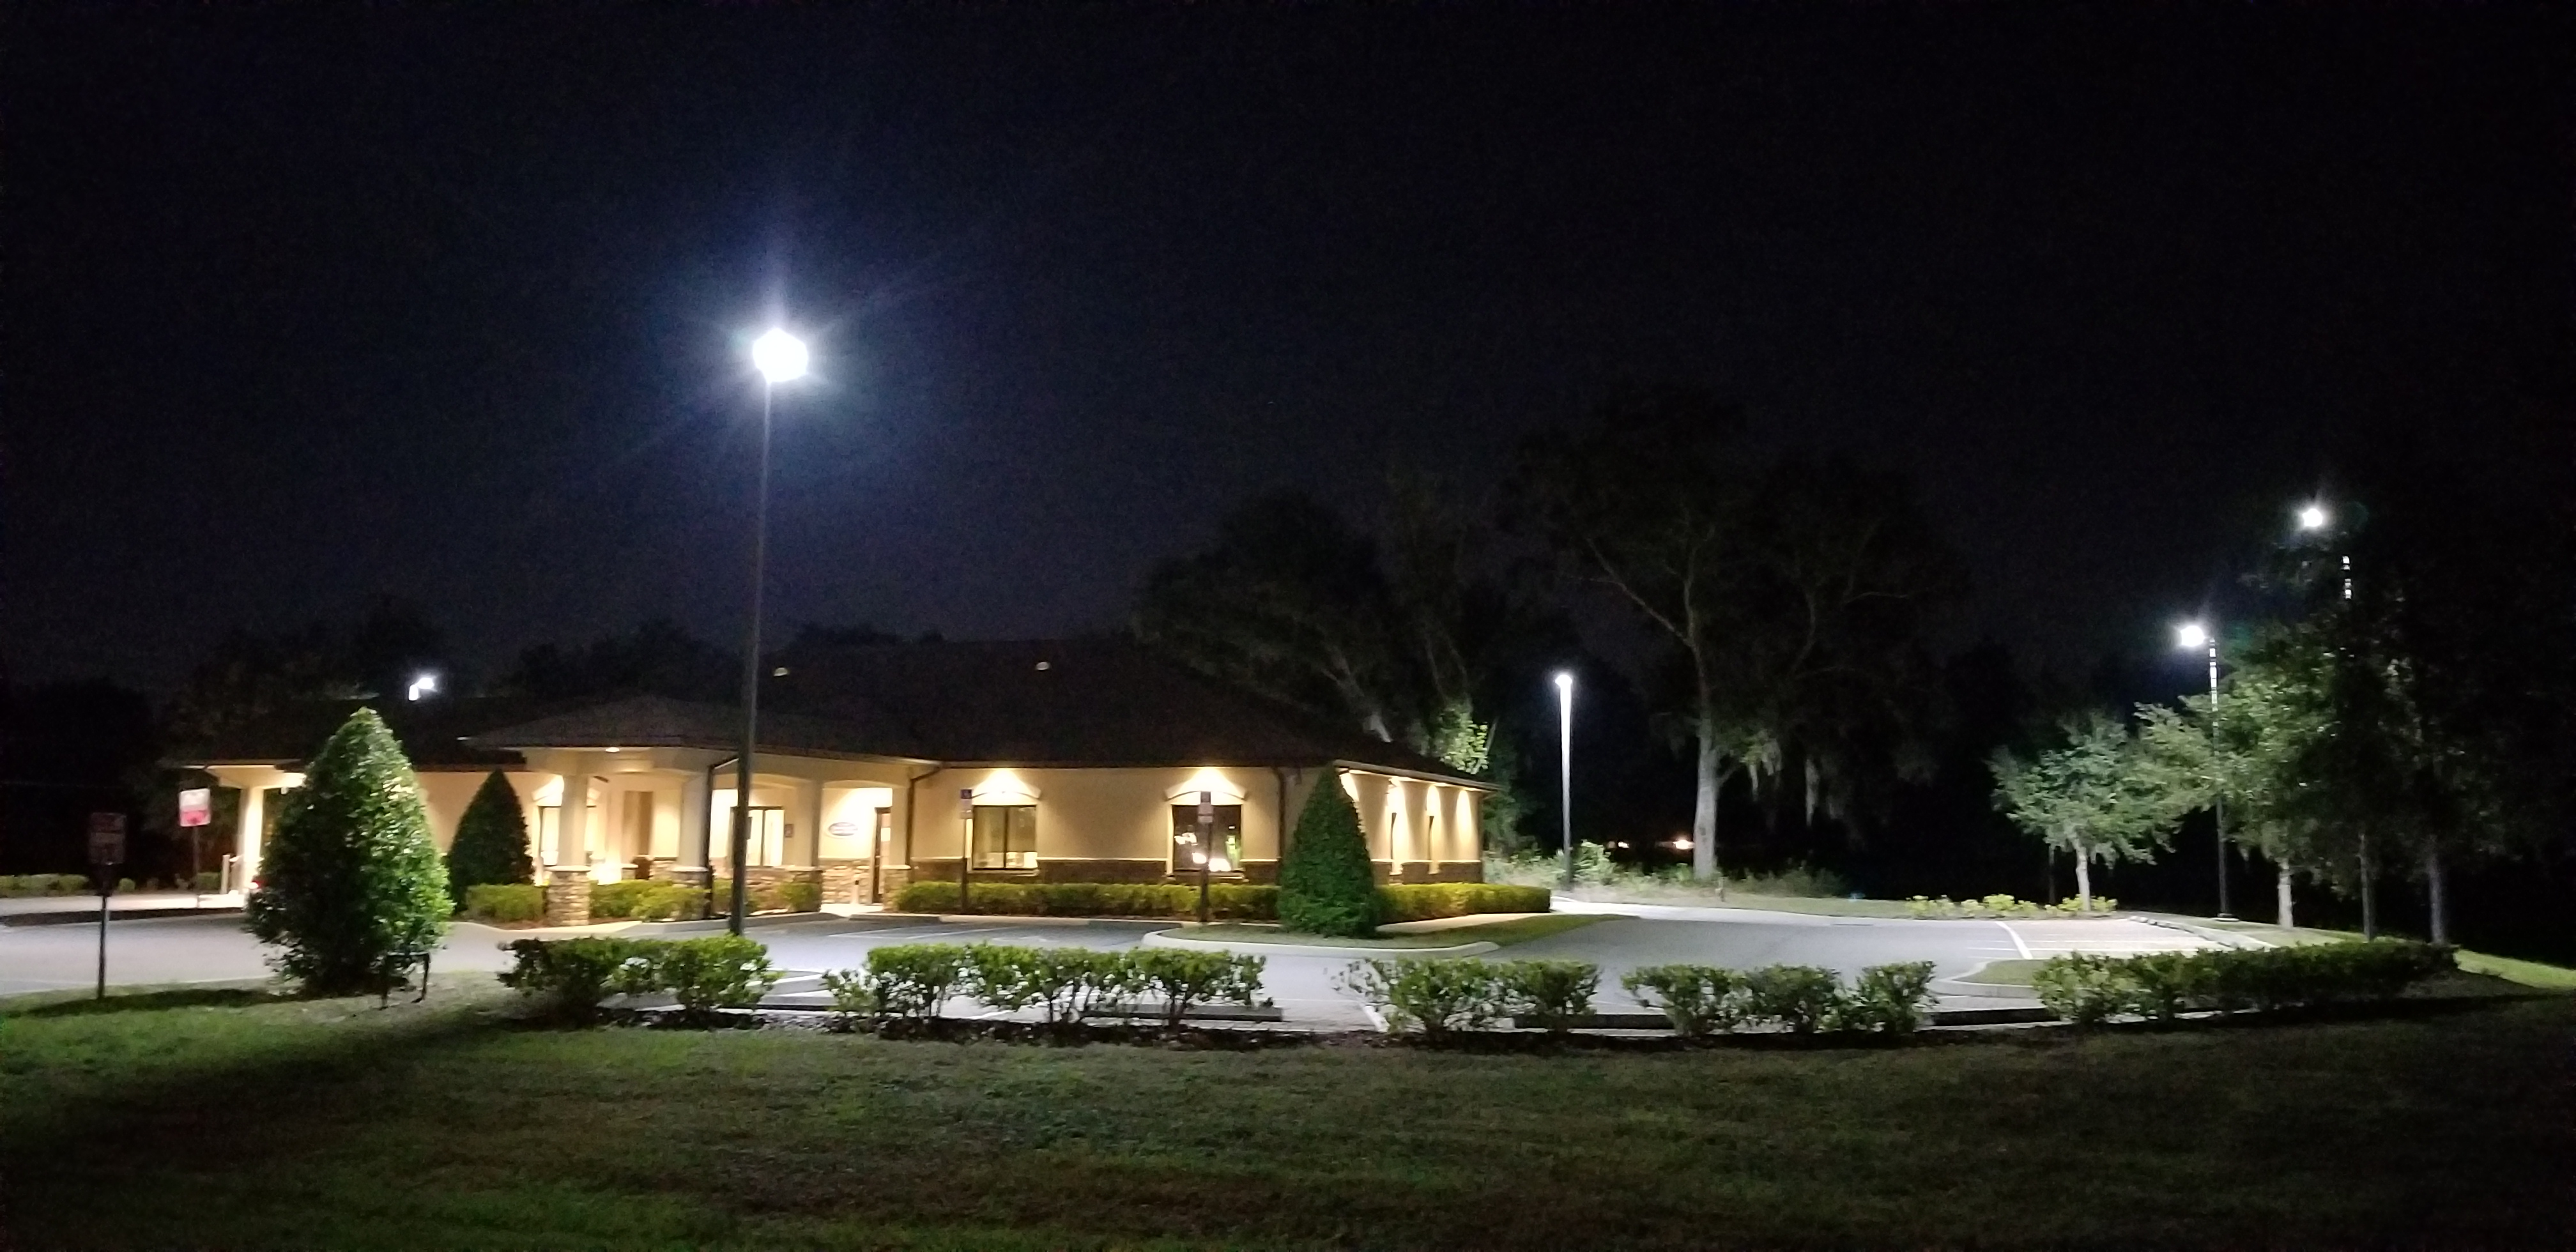 11-21-2018 OCCU's new lights